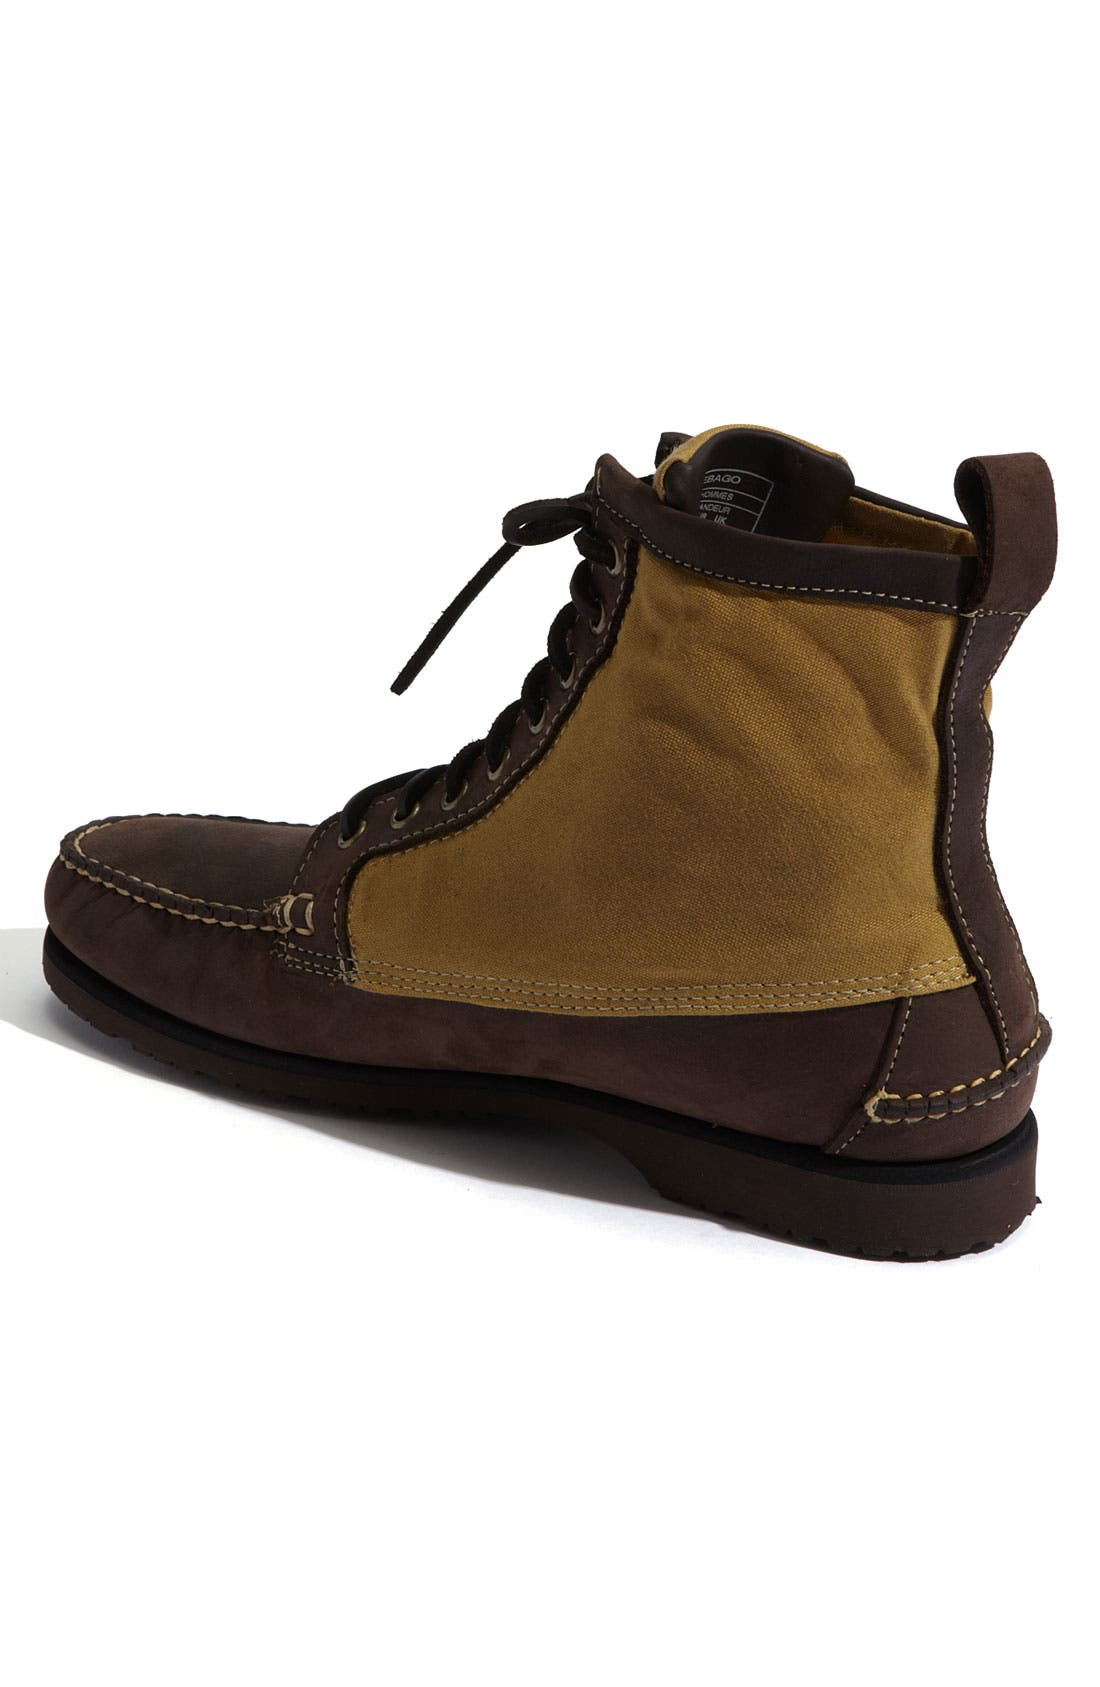 'Kettle' Boot, Main, color, 200